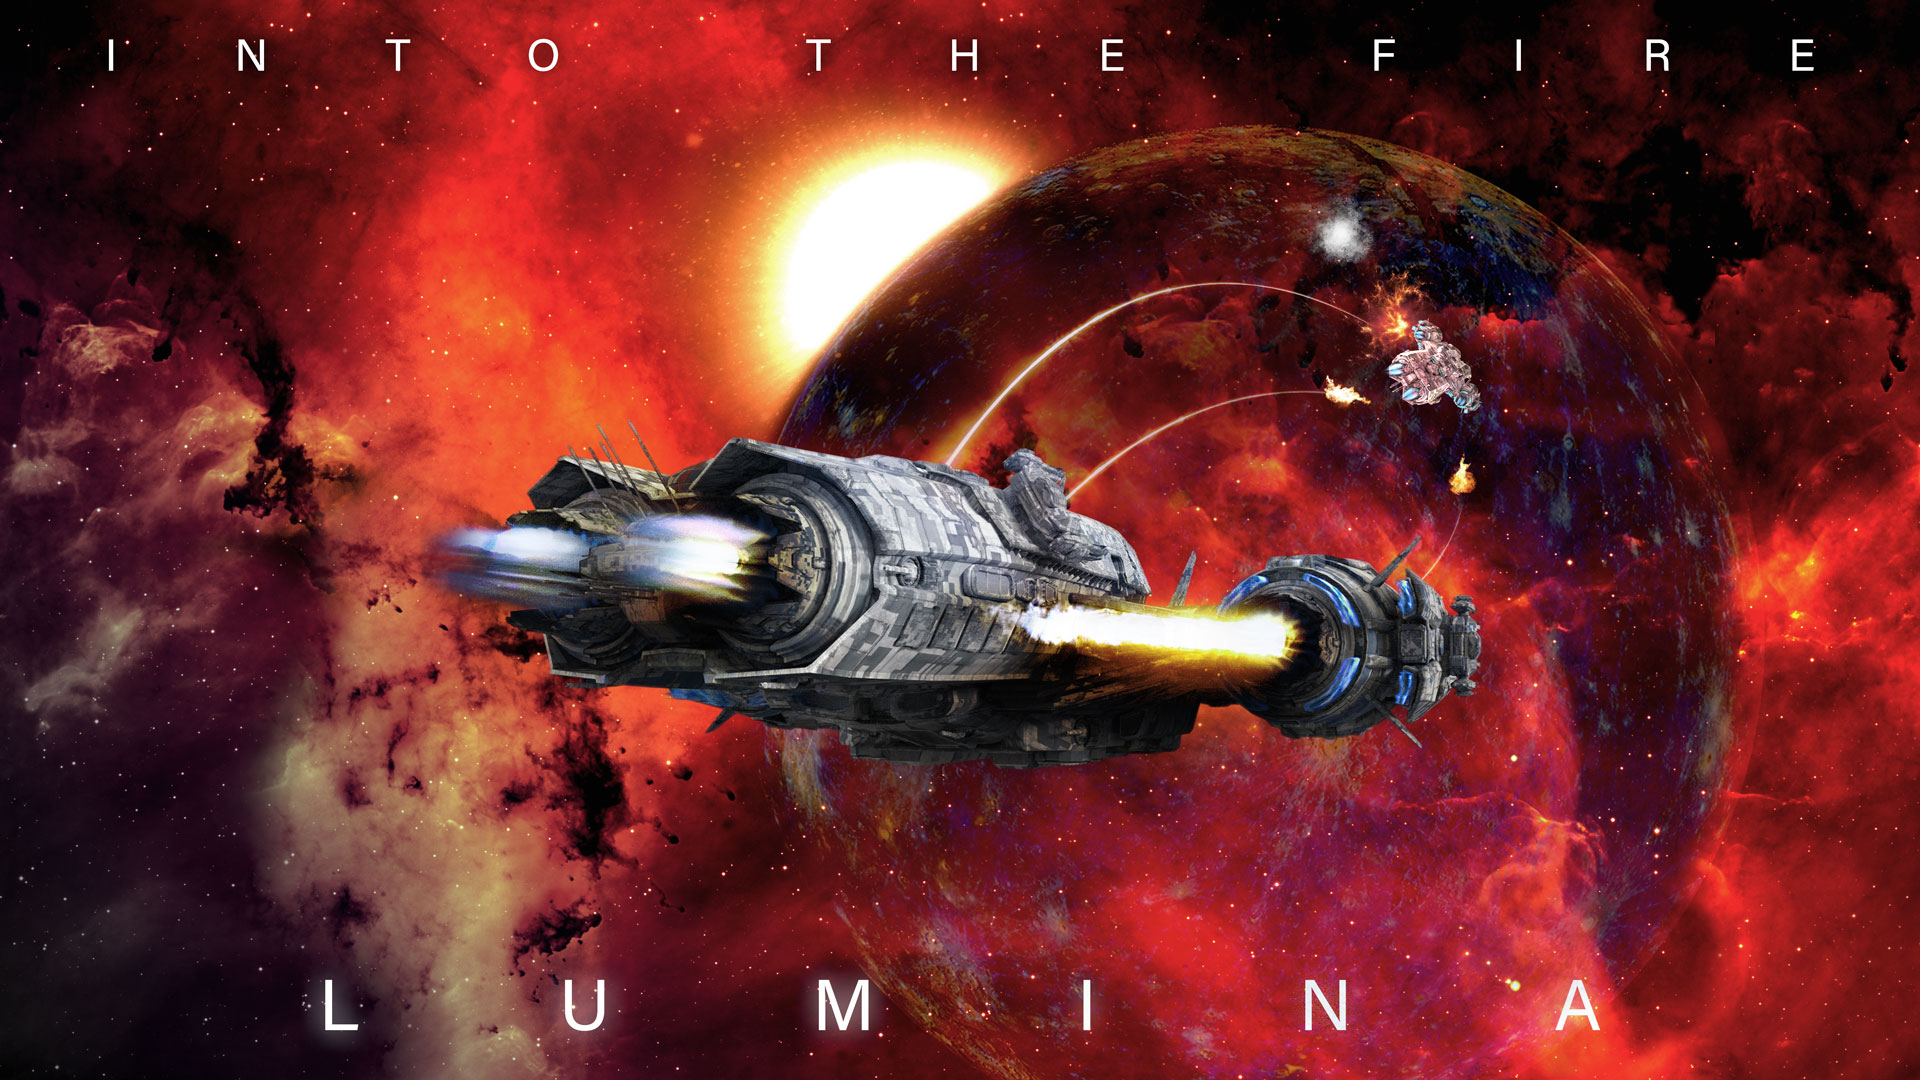 Into the Fire  - the first book in the Lumina series by I.G. Hulme